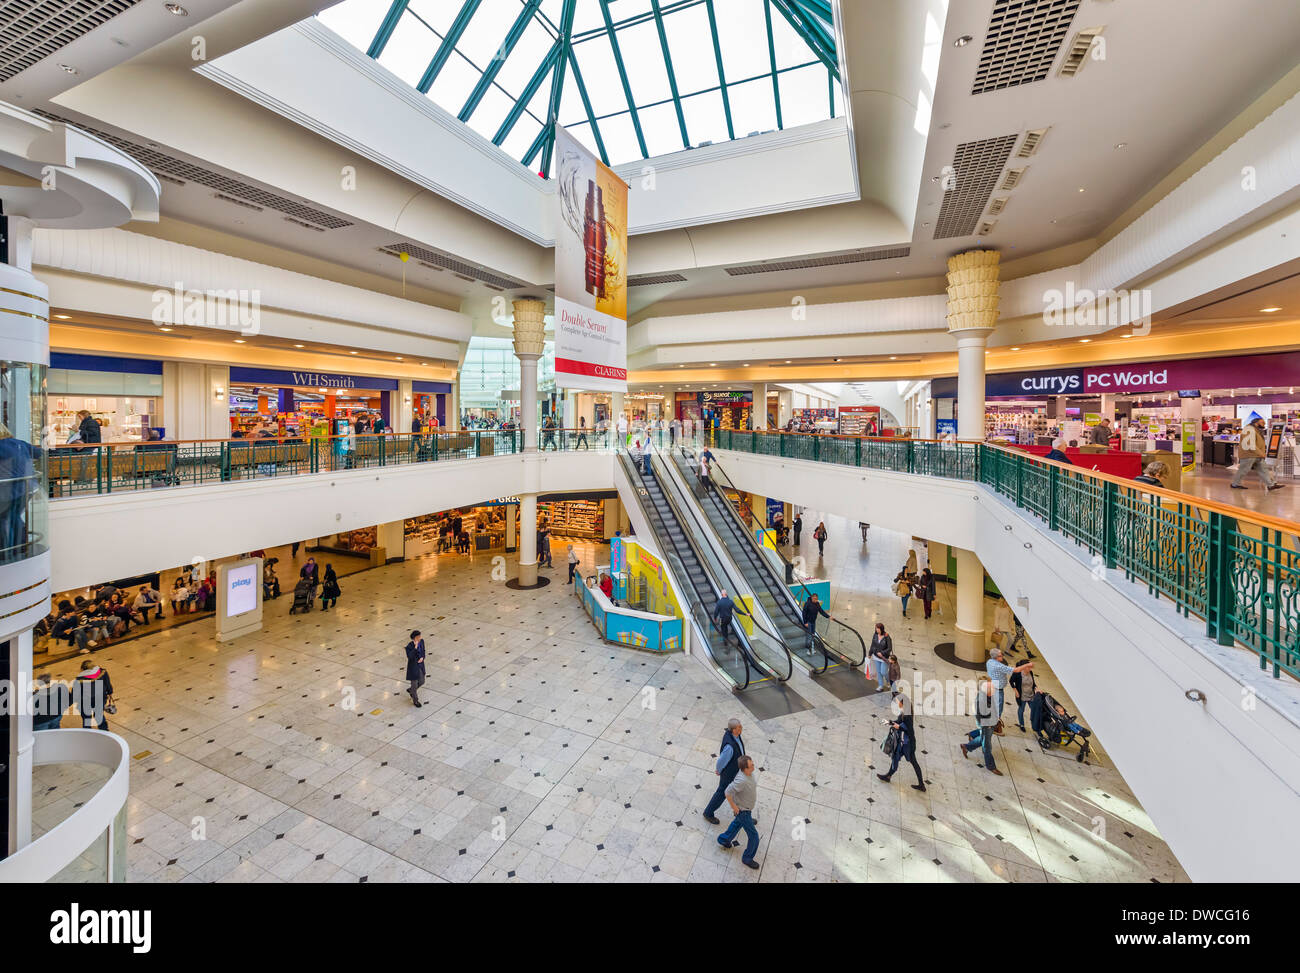 Meadowhall shopping centre, Sheffield, South Yorkshire, England, UK - Stock Image